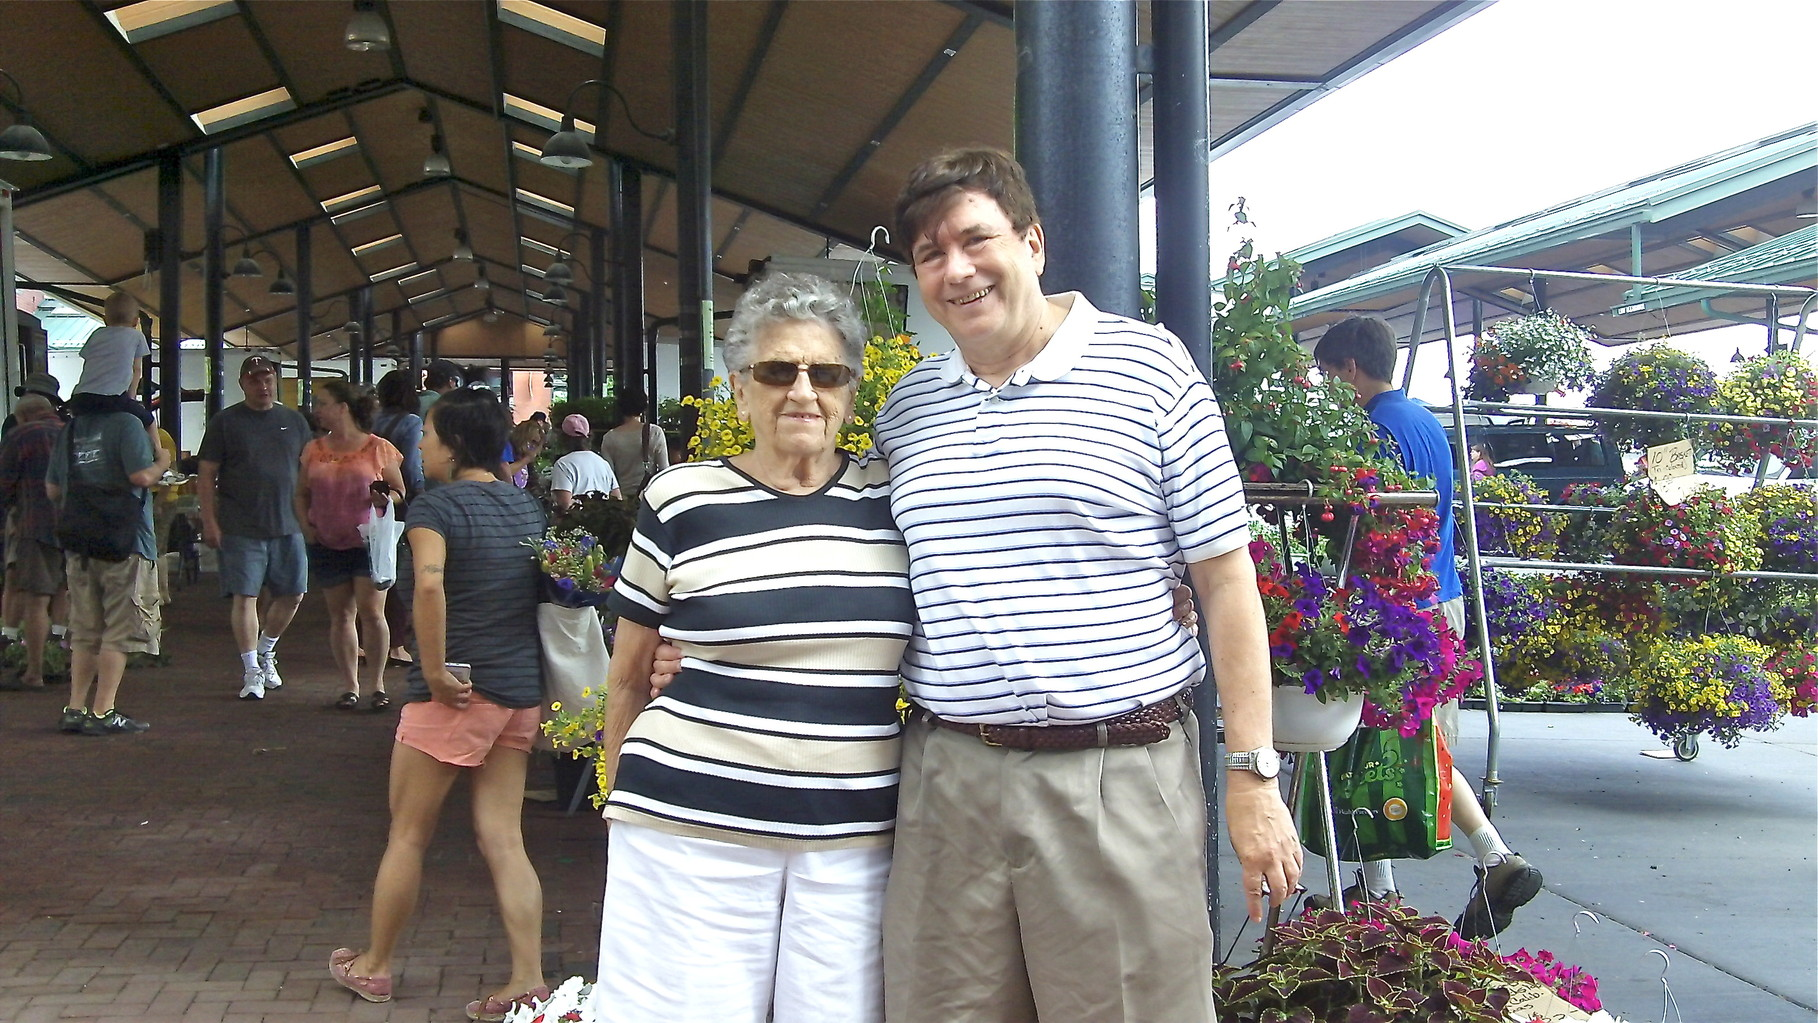 St. Paul Farmer's Market, Mary Lou & John